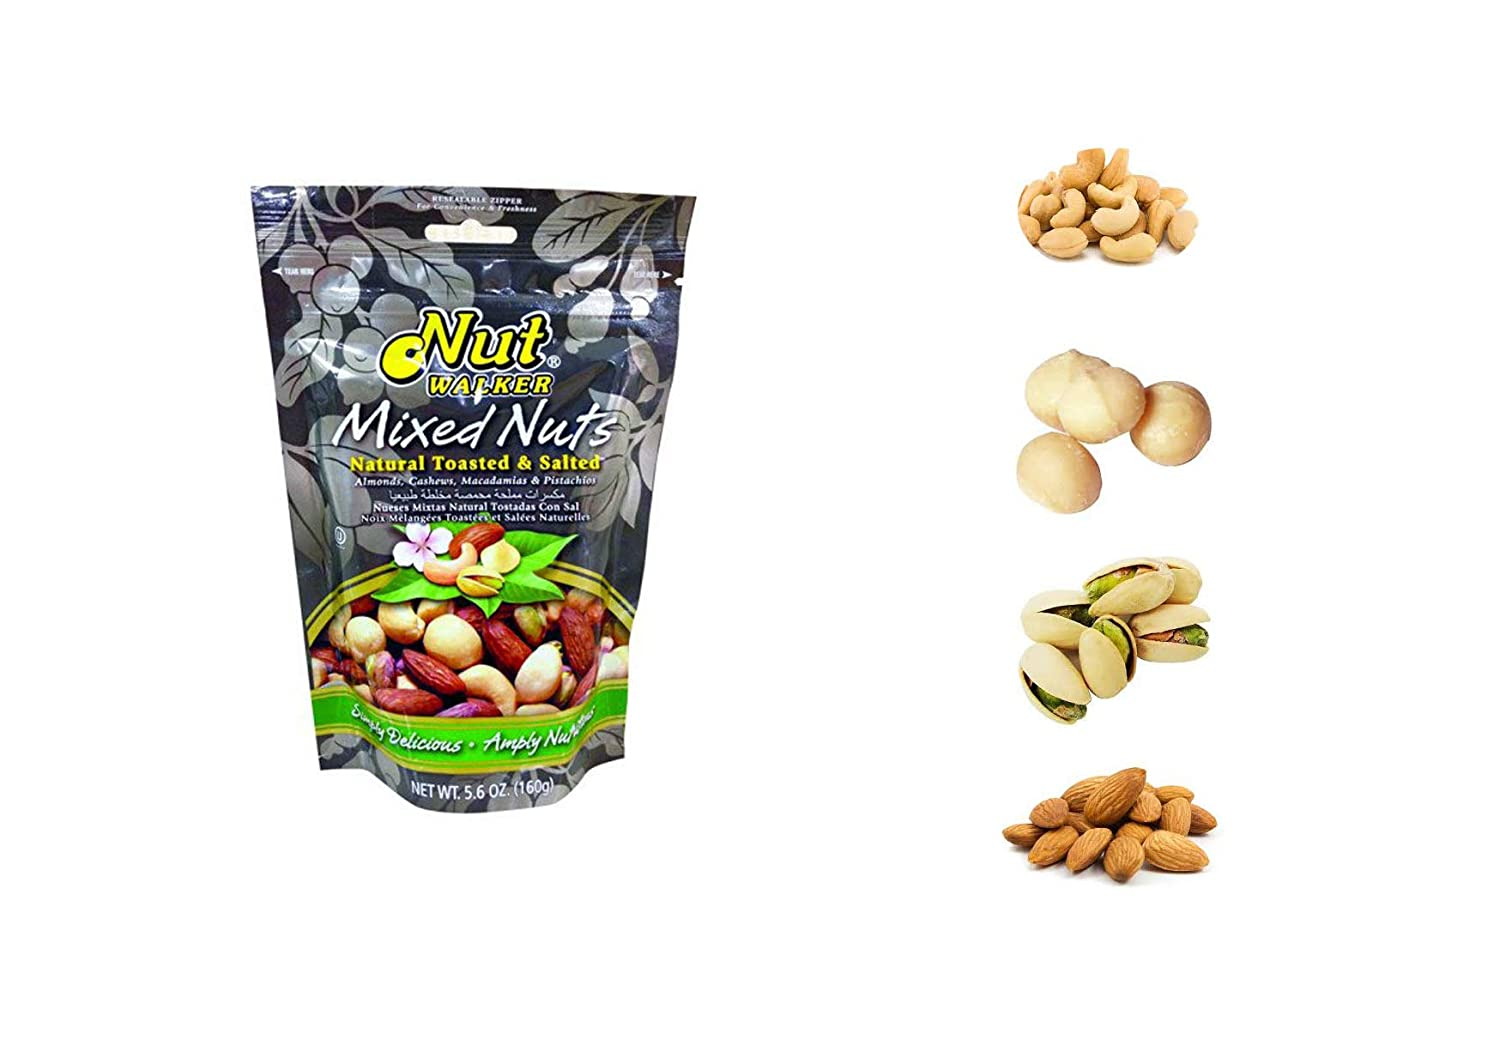 Mixed Nut Almonds, Cashews, Macadamias,Pistachios, Nut Gift Basket 4-section Elegant Nut Gourmet Christmas Gift Great for Thanksgiving